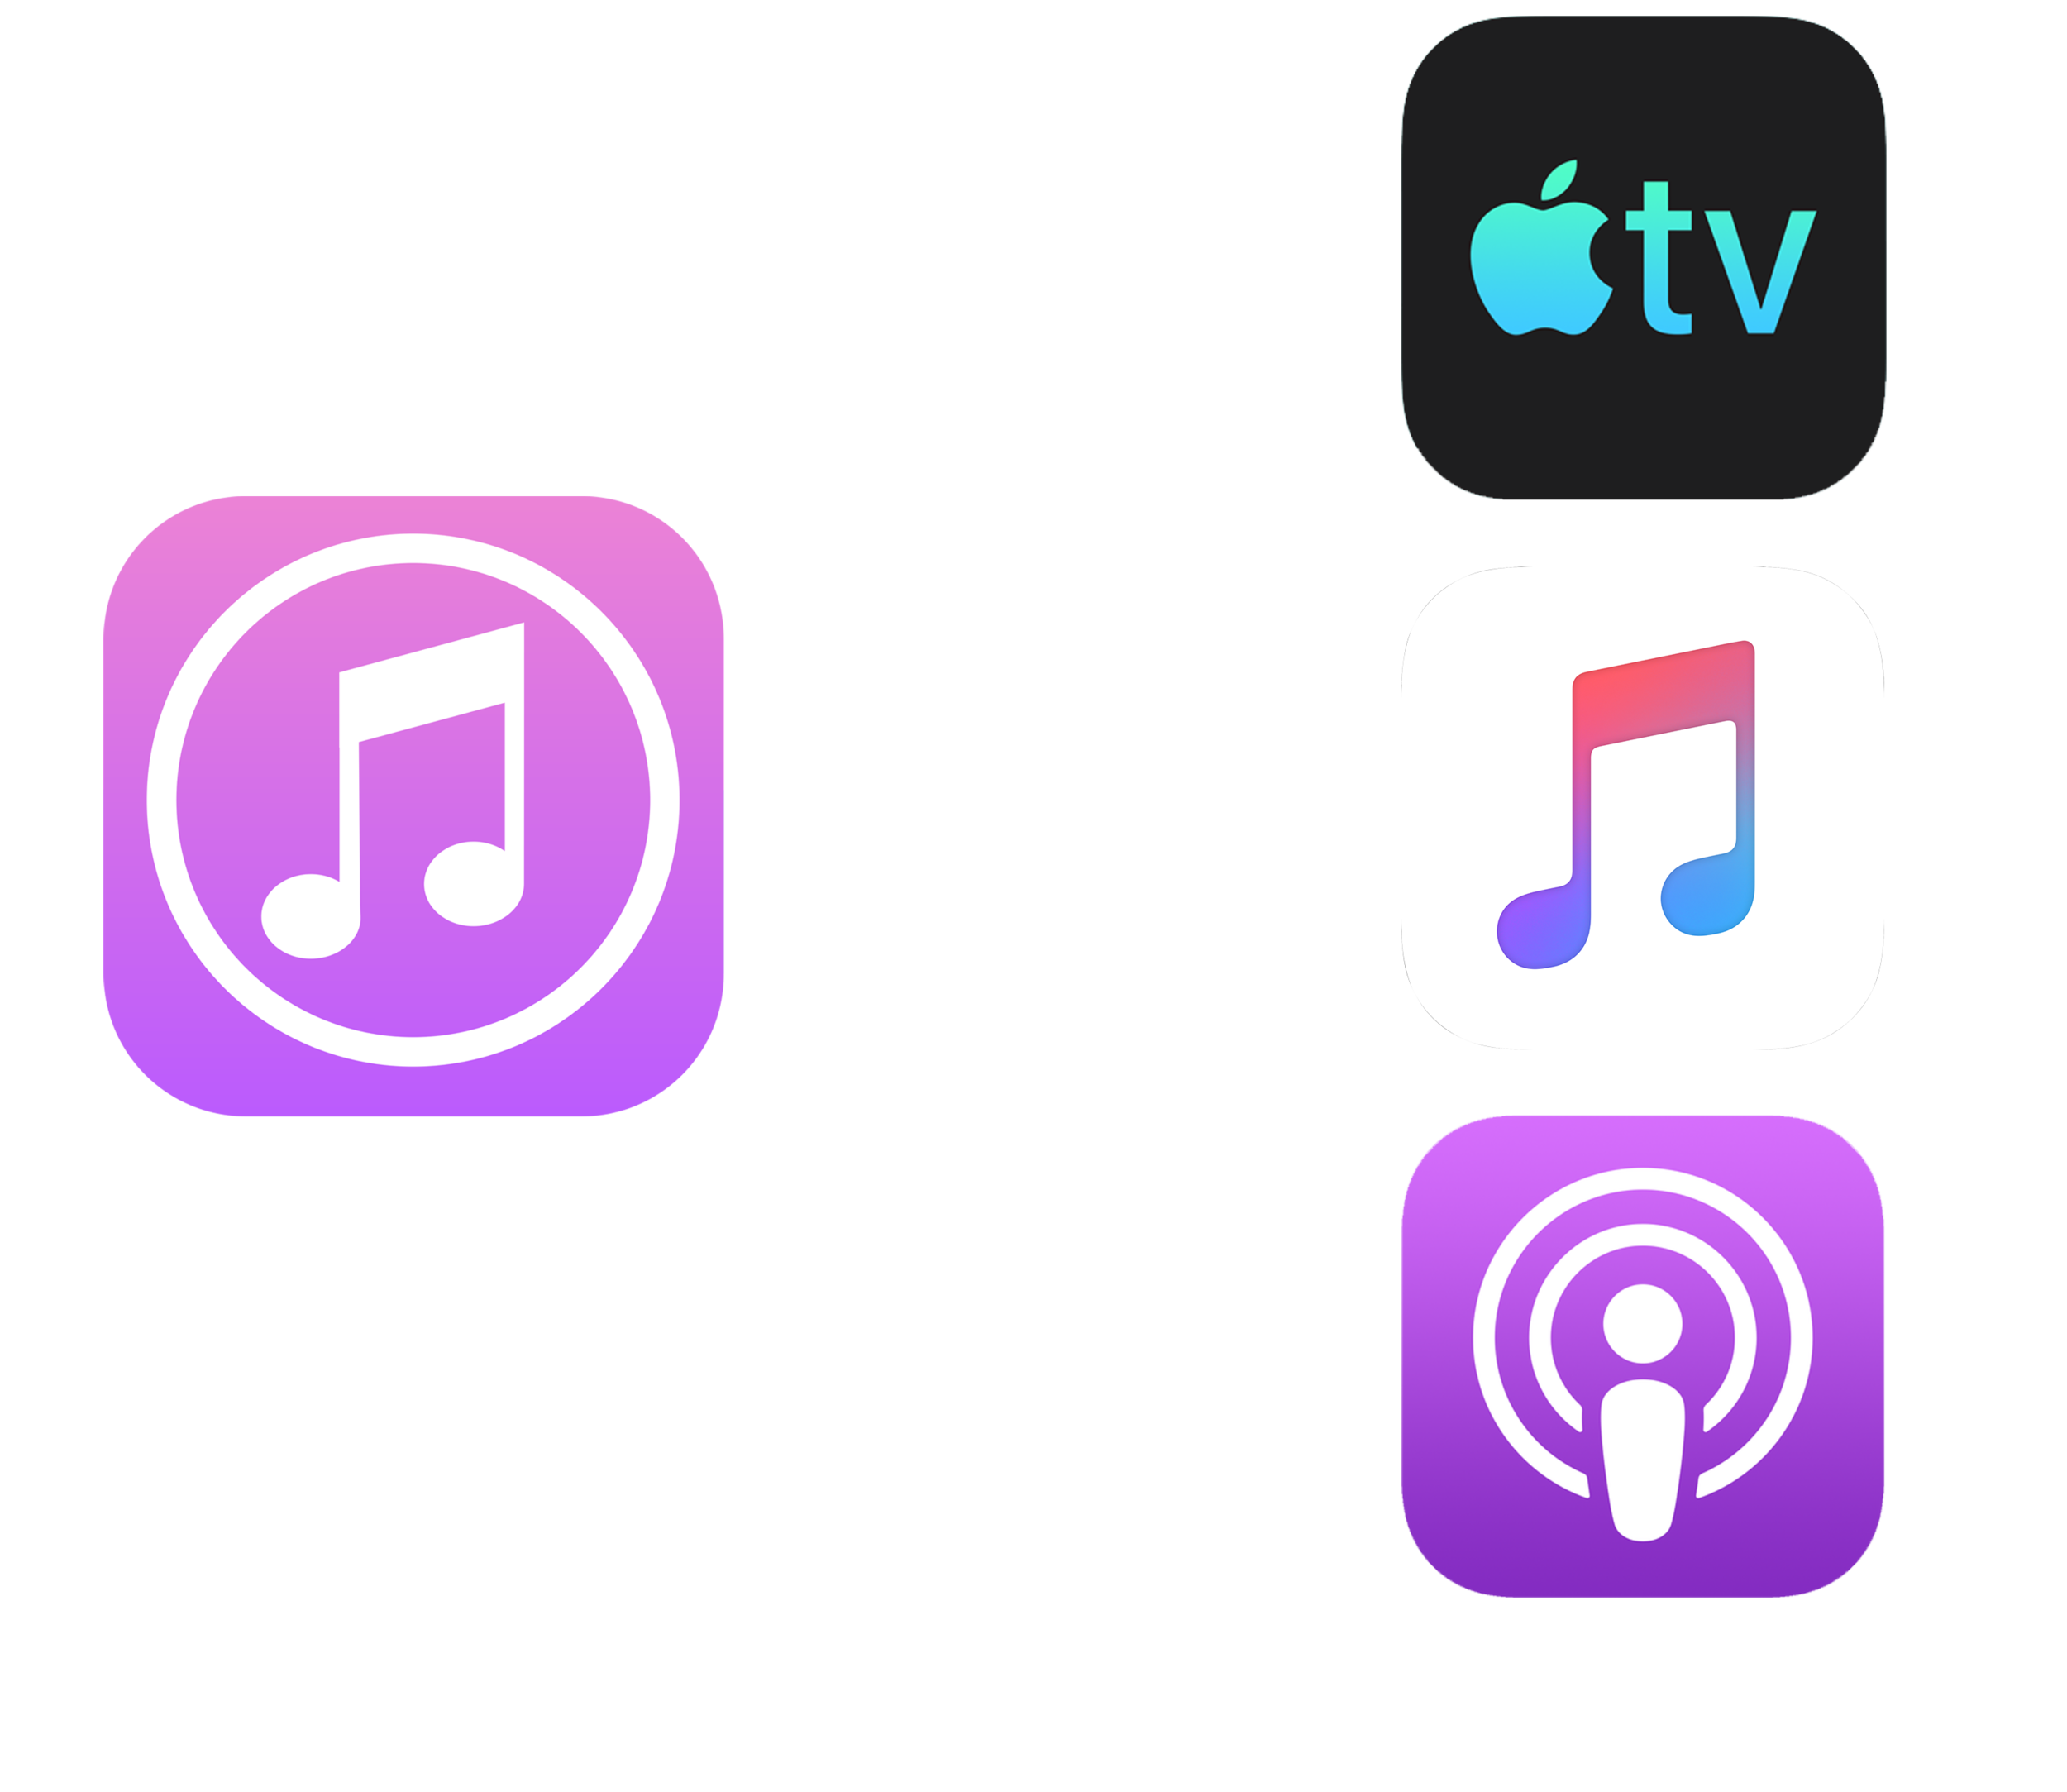 WHAT EXACTLY IS HAPPENING? - Apple will soon be splitting iTunes into specific applications tailored towards each product. Instead of having it all under one roof, now TV (includes Movies), Music, and Podcasts will each have their own apps where you can browse, listen, watch, and purchase content. For more details, see this article.